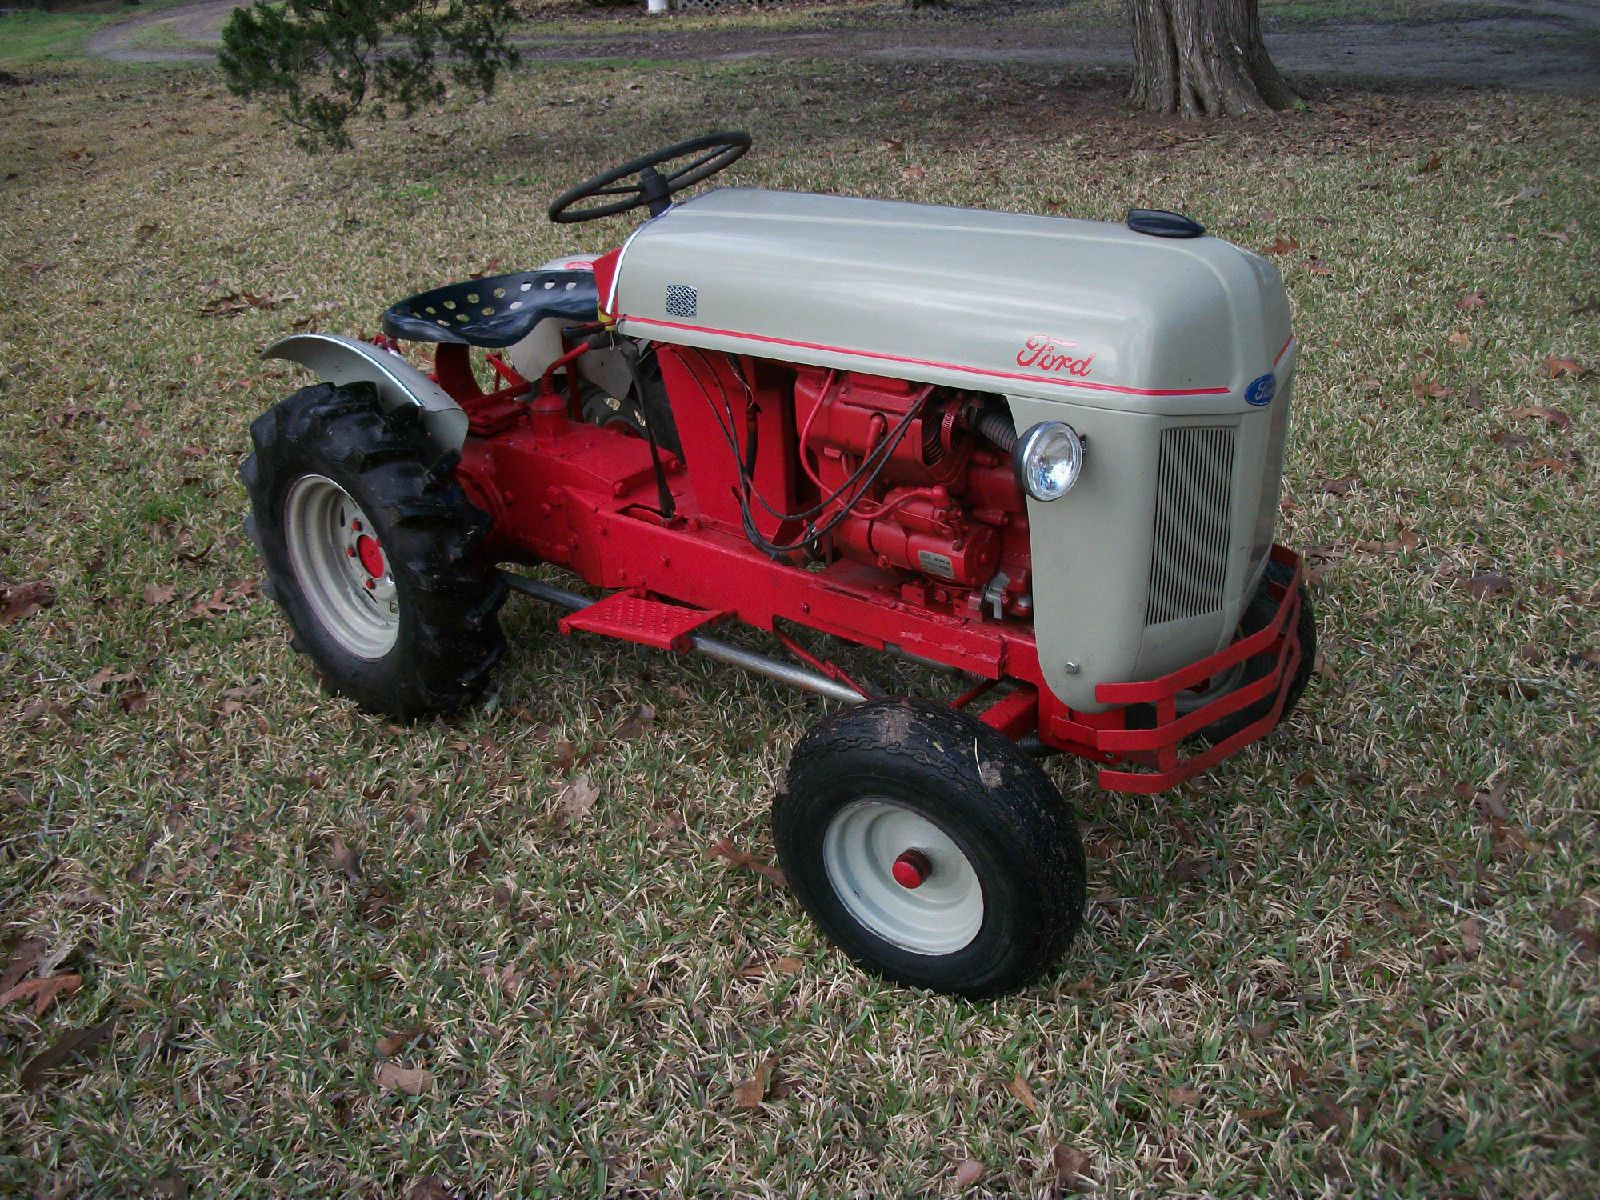 Miniature 8N Ford Tractor Look Alike with Kohler Engine | eBay